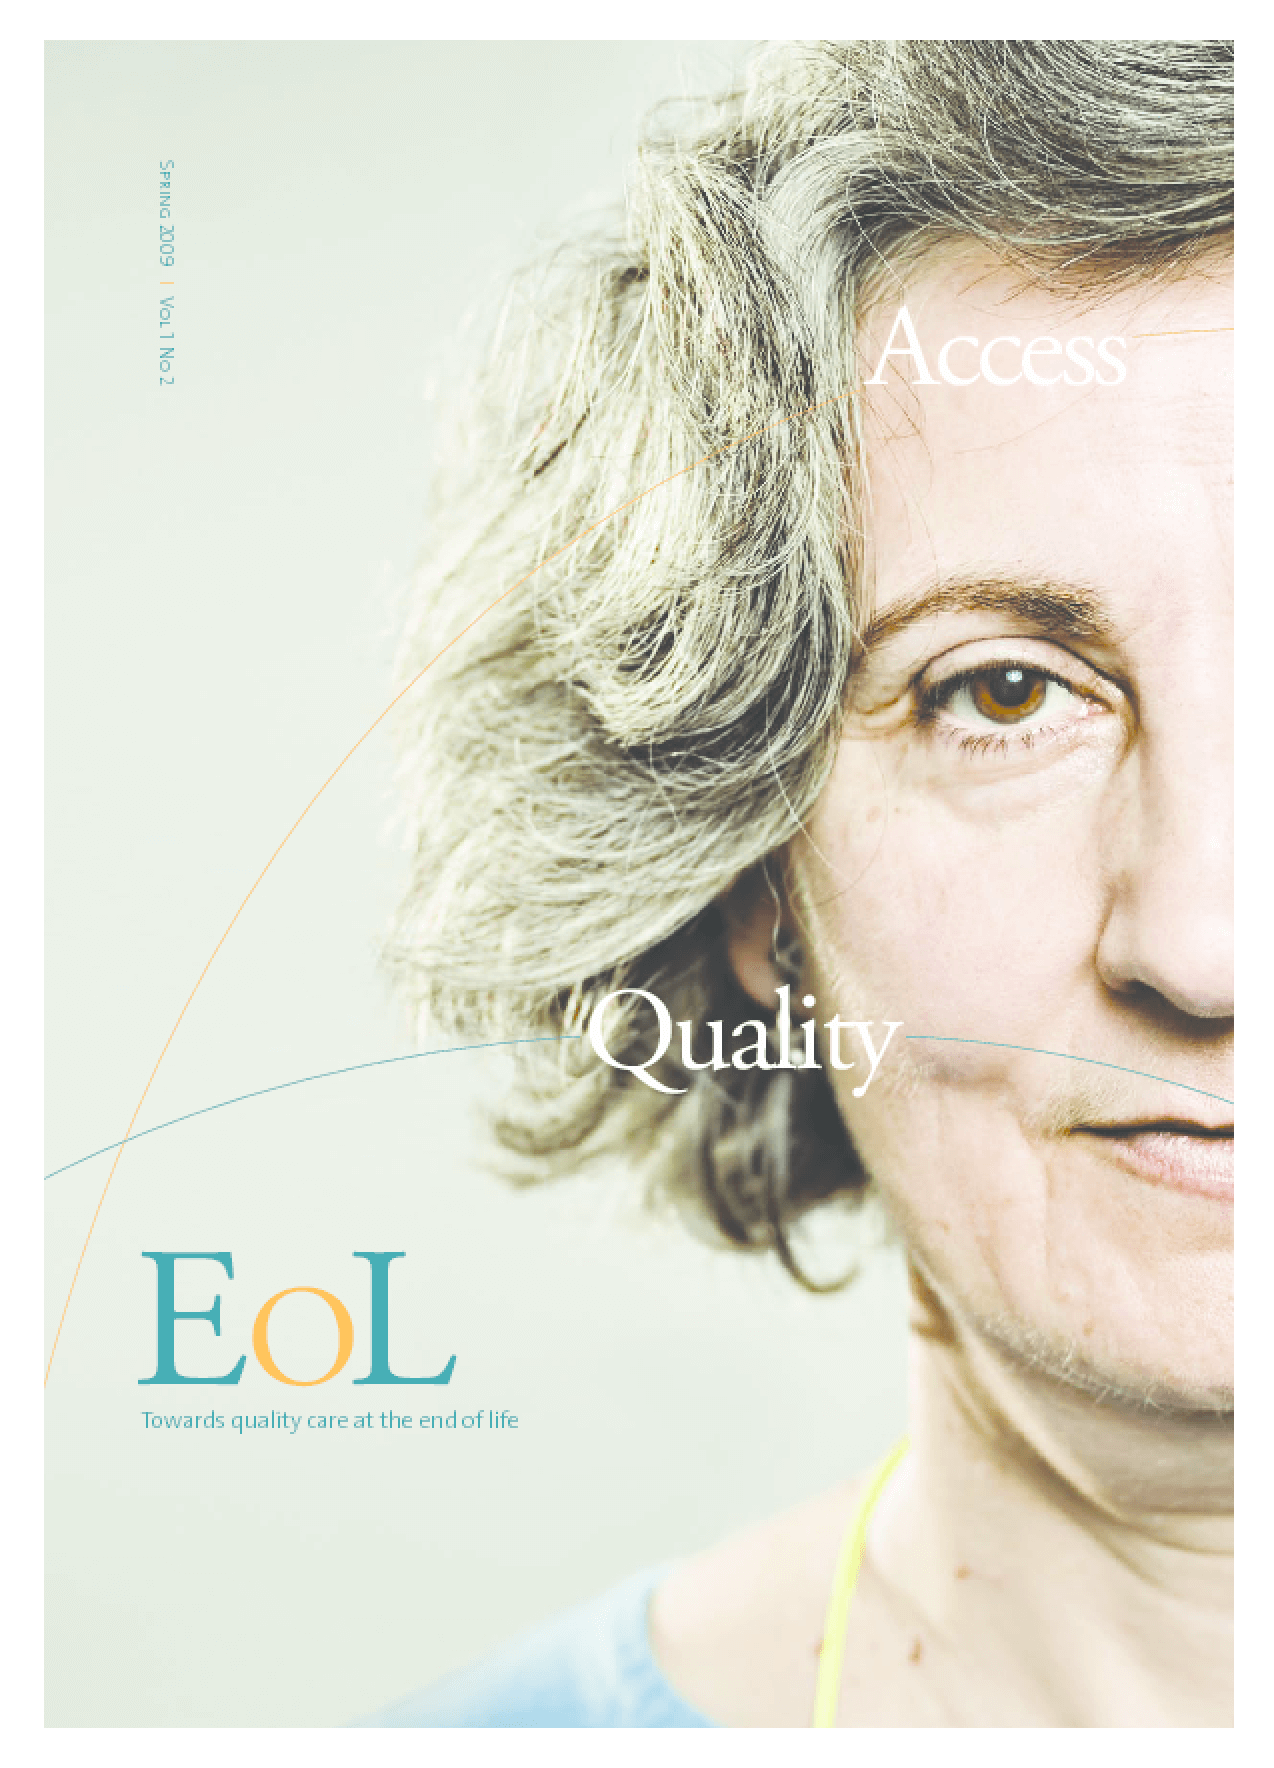 EoL: Towards Quality Care at the End of Life